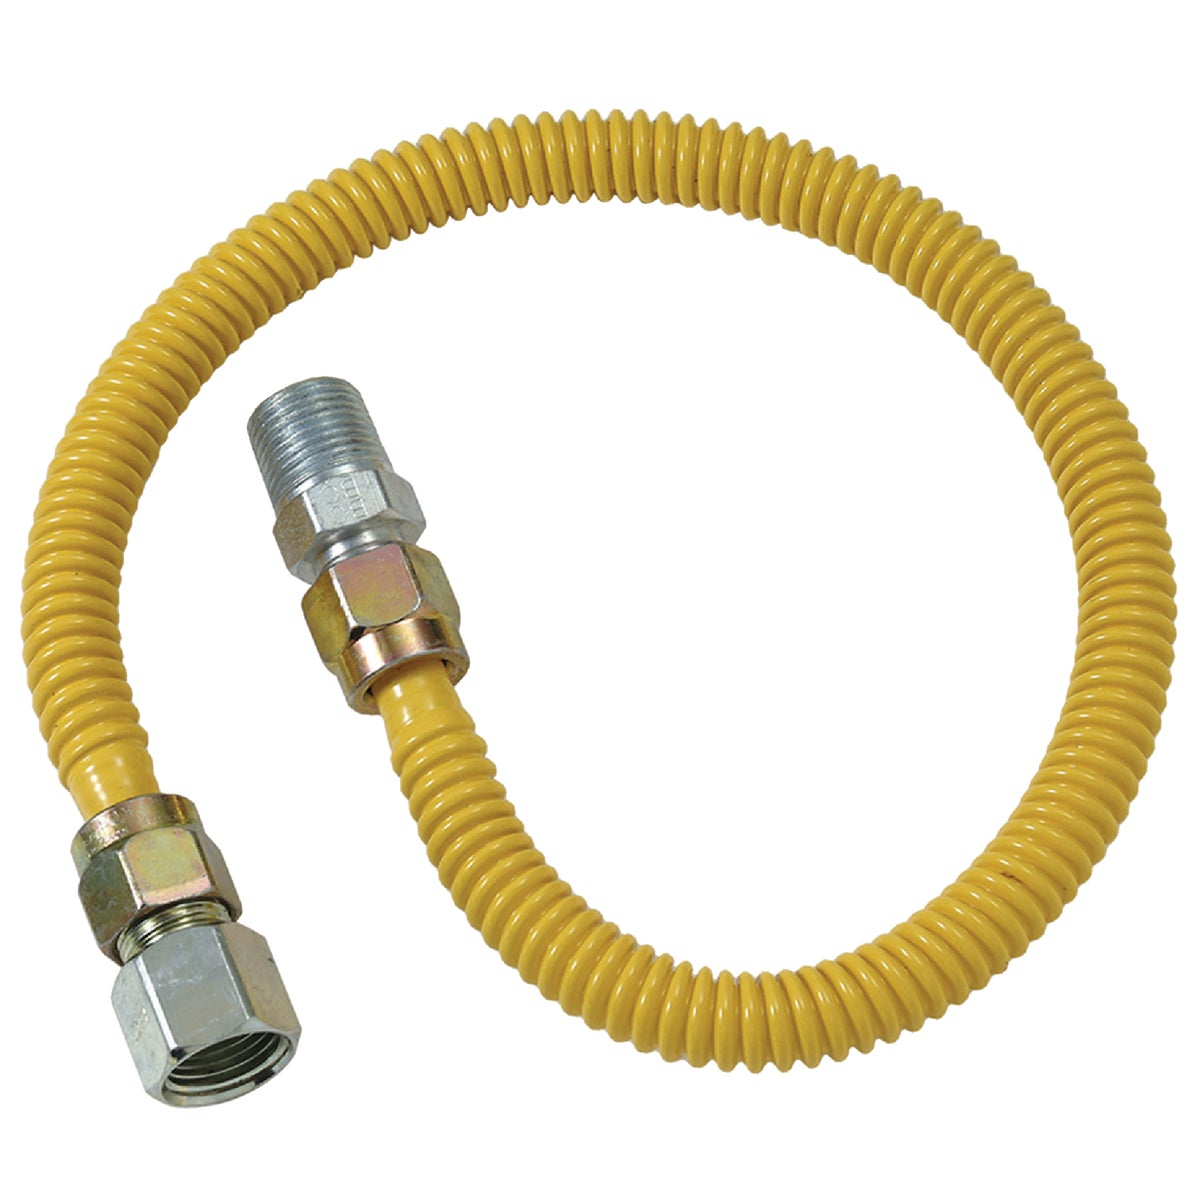 1/2X60 GAS CONNECTOR - CSSD54-60P by Brass Craft